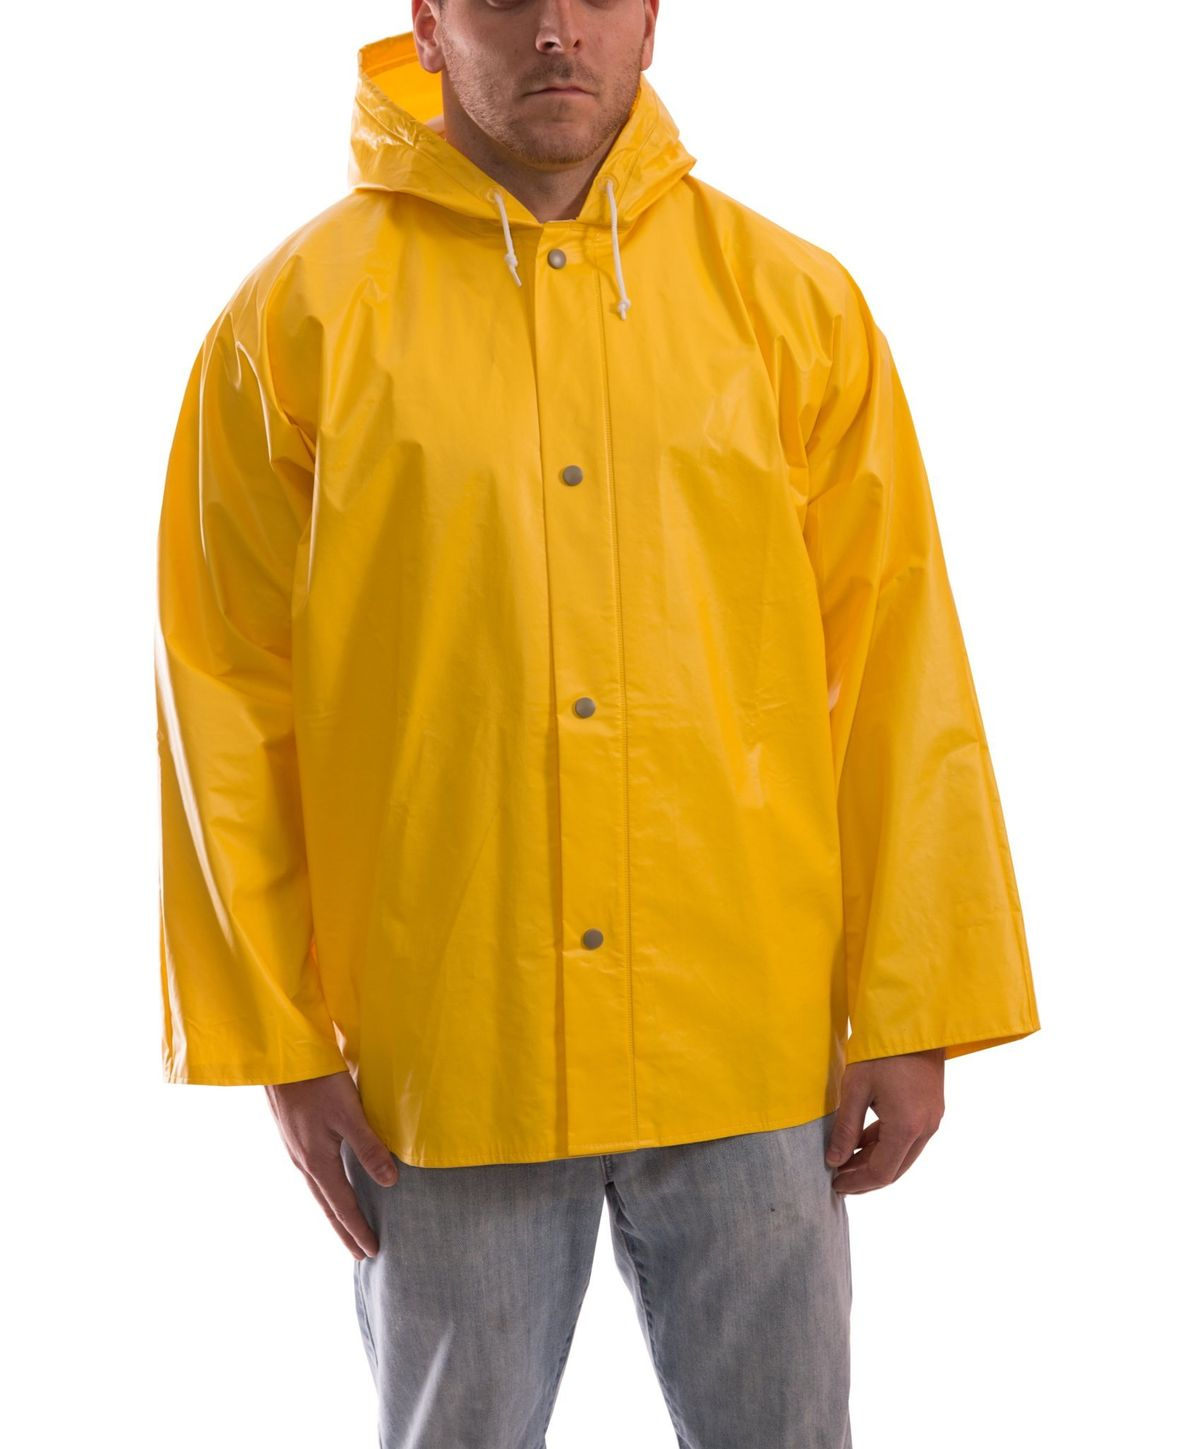 tingley-j32107-pvc-coated-work-jacket-with-attached-hood-front.jpg